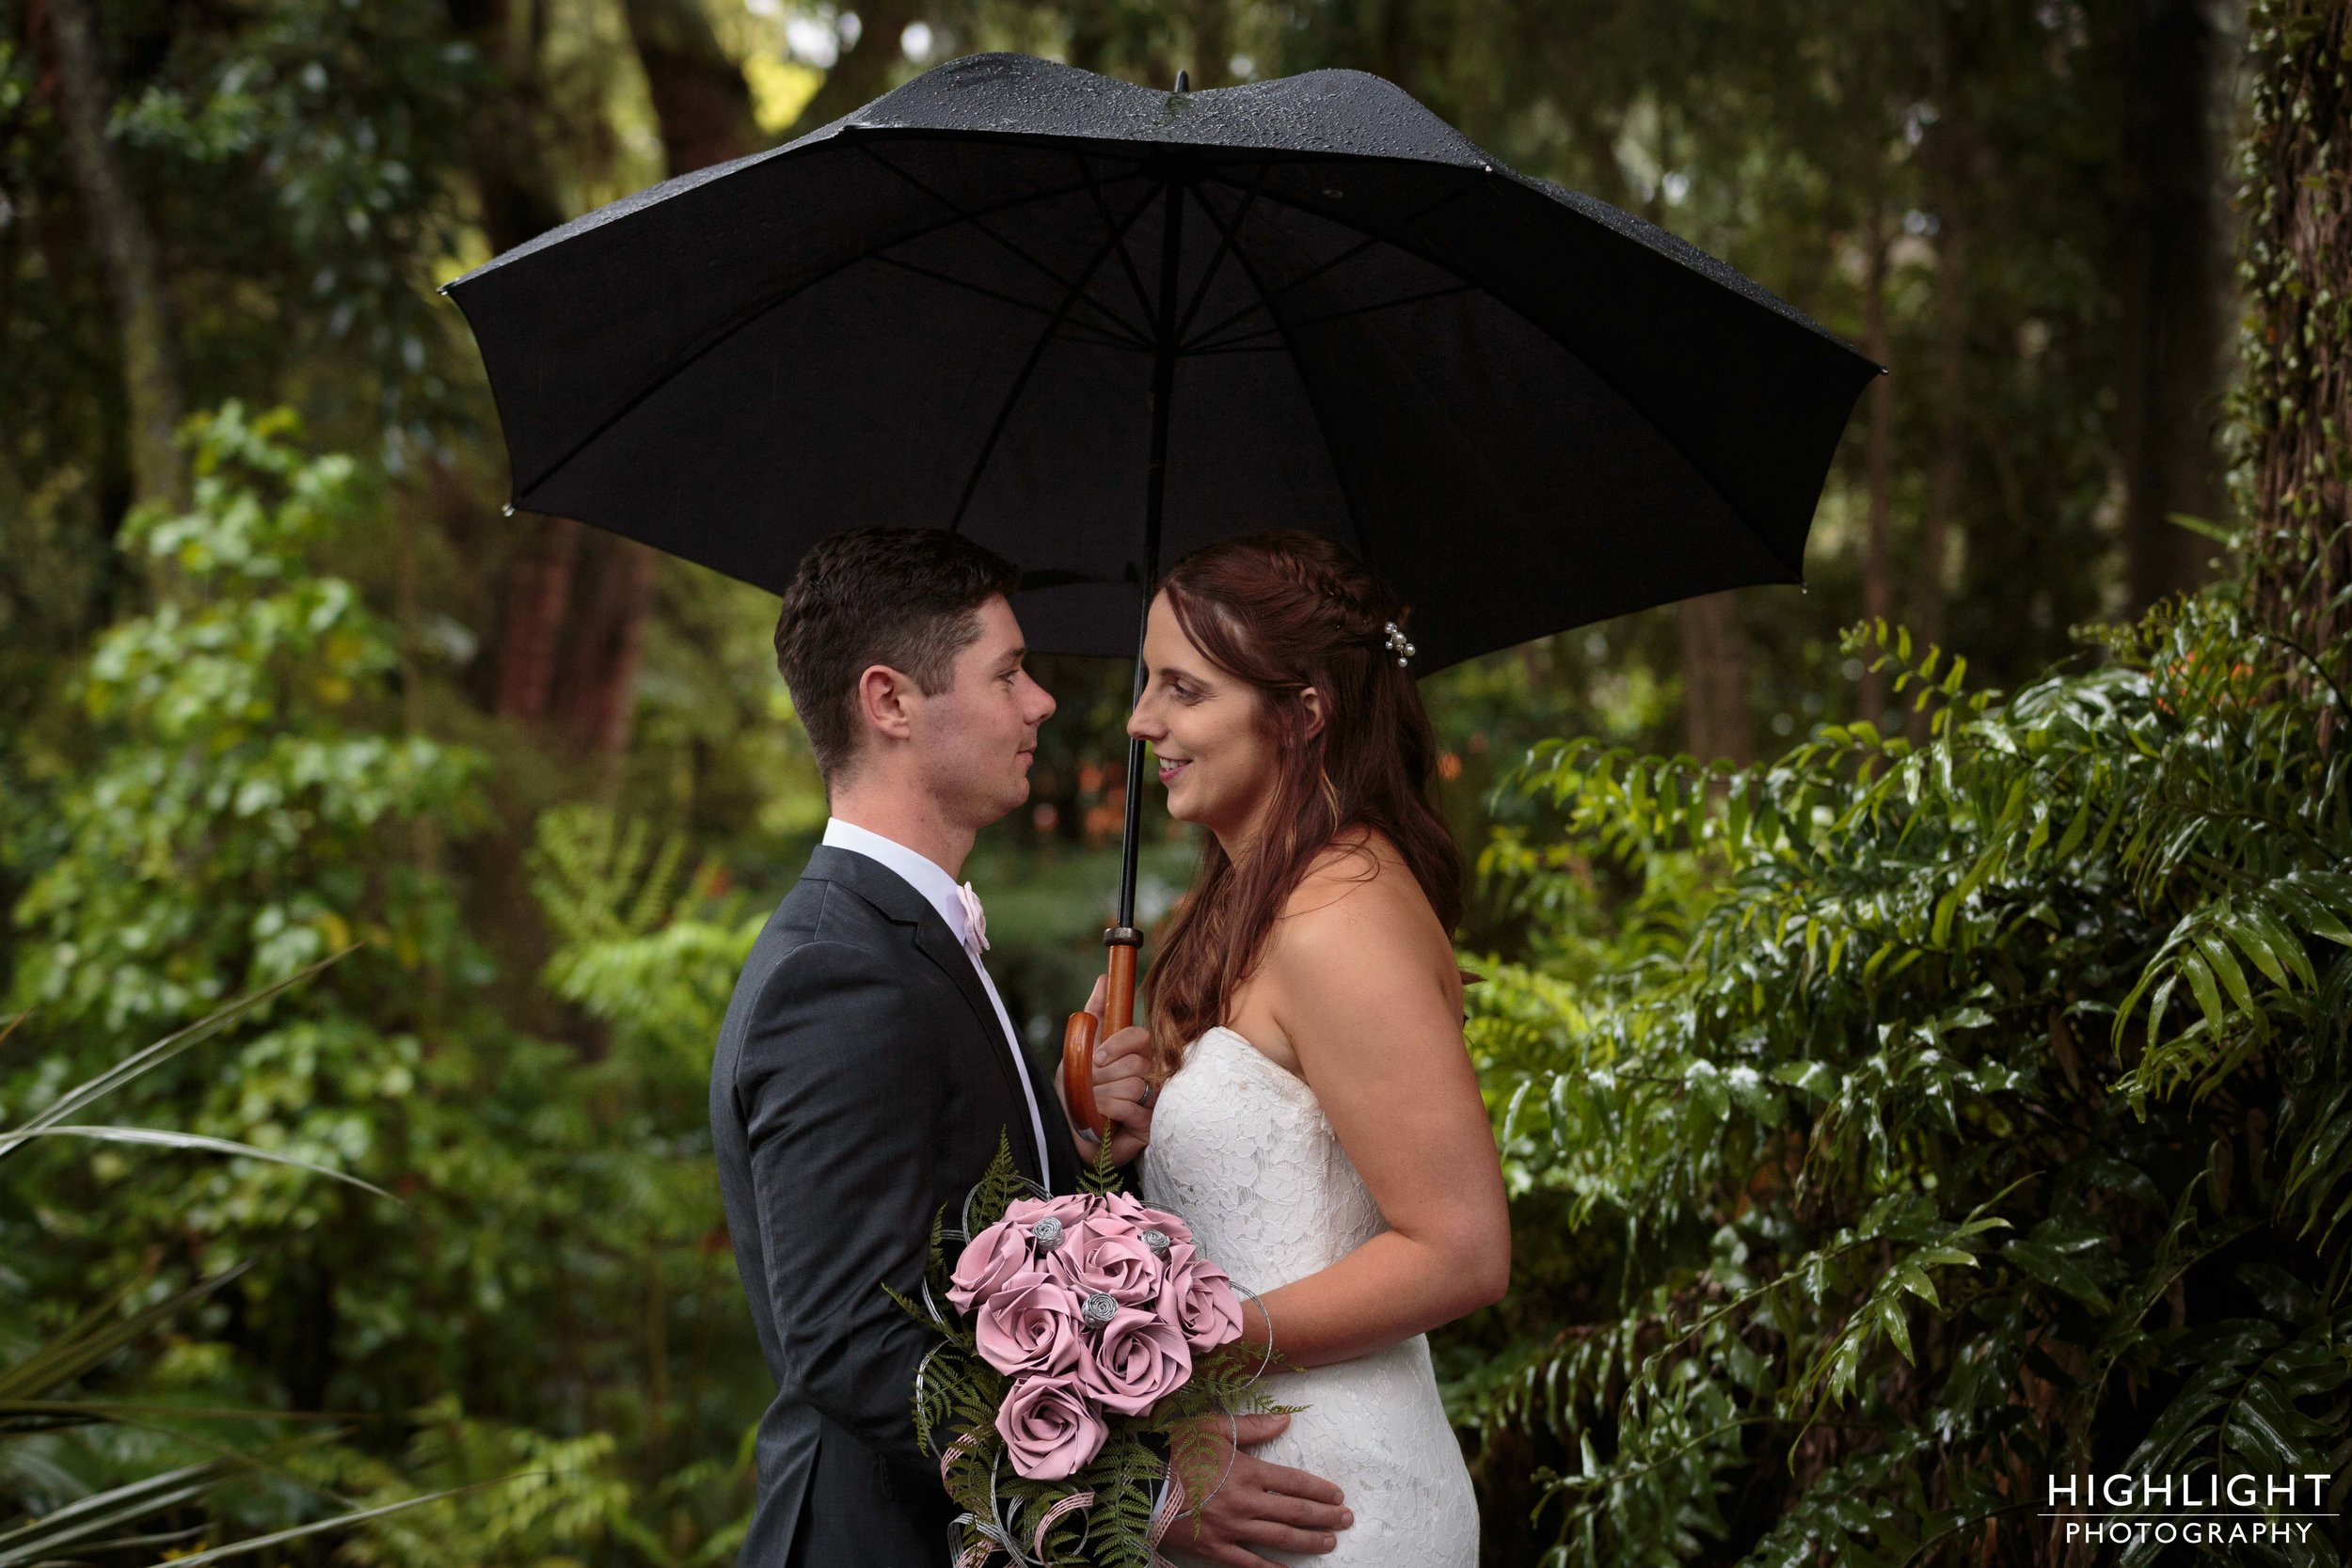 highlight-wedding-photography-palmerston-north-new-zealand-sarahben-2017-51.jpg